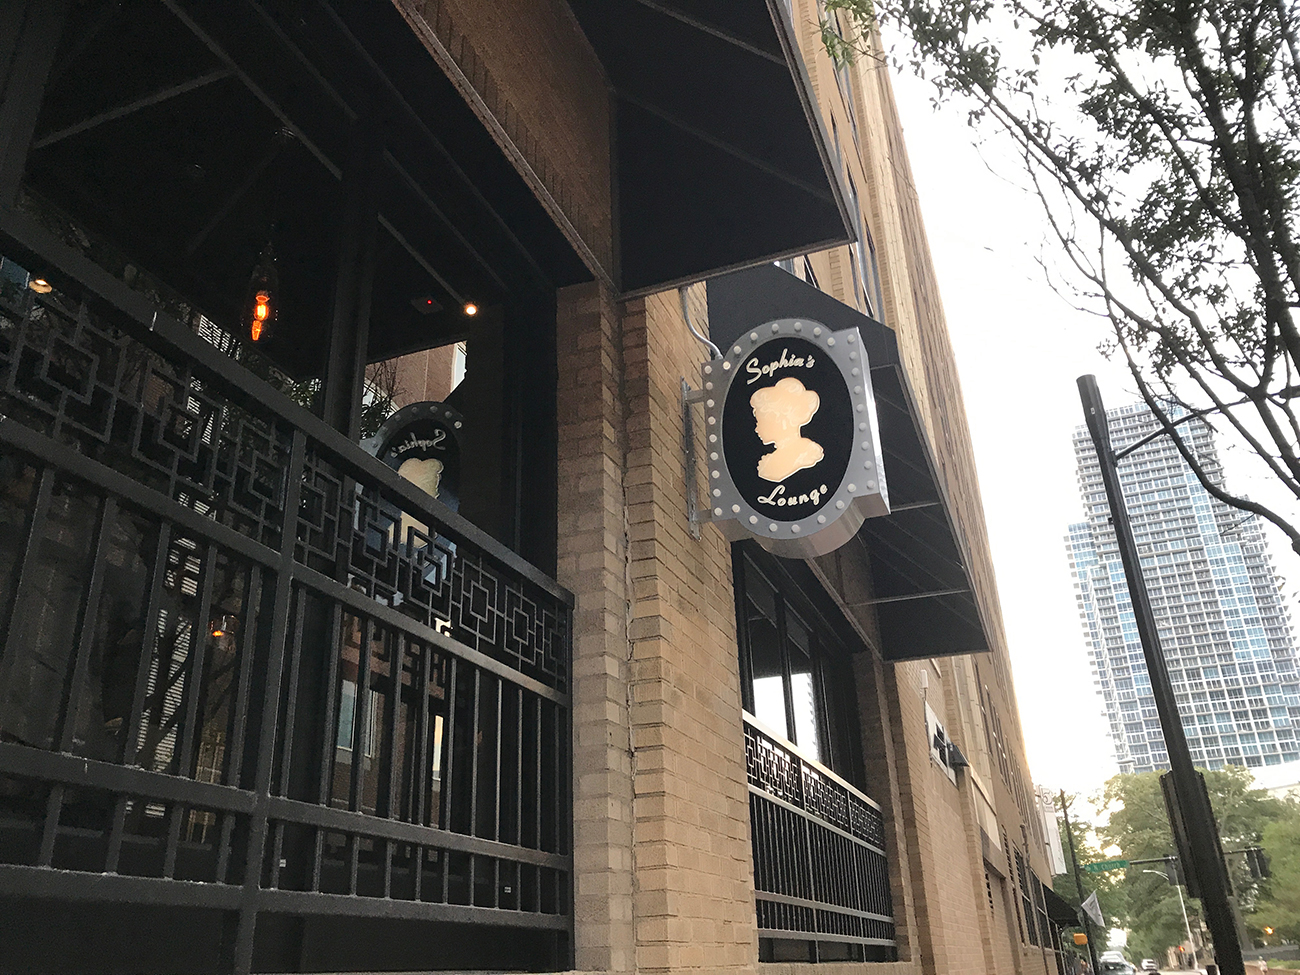 Sophia's Lounge is now open in the Ivey's Hotel